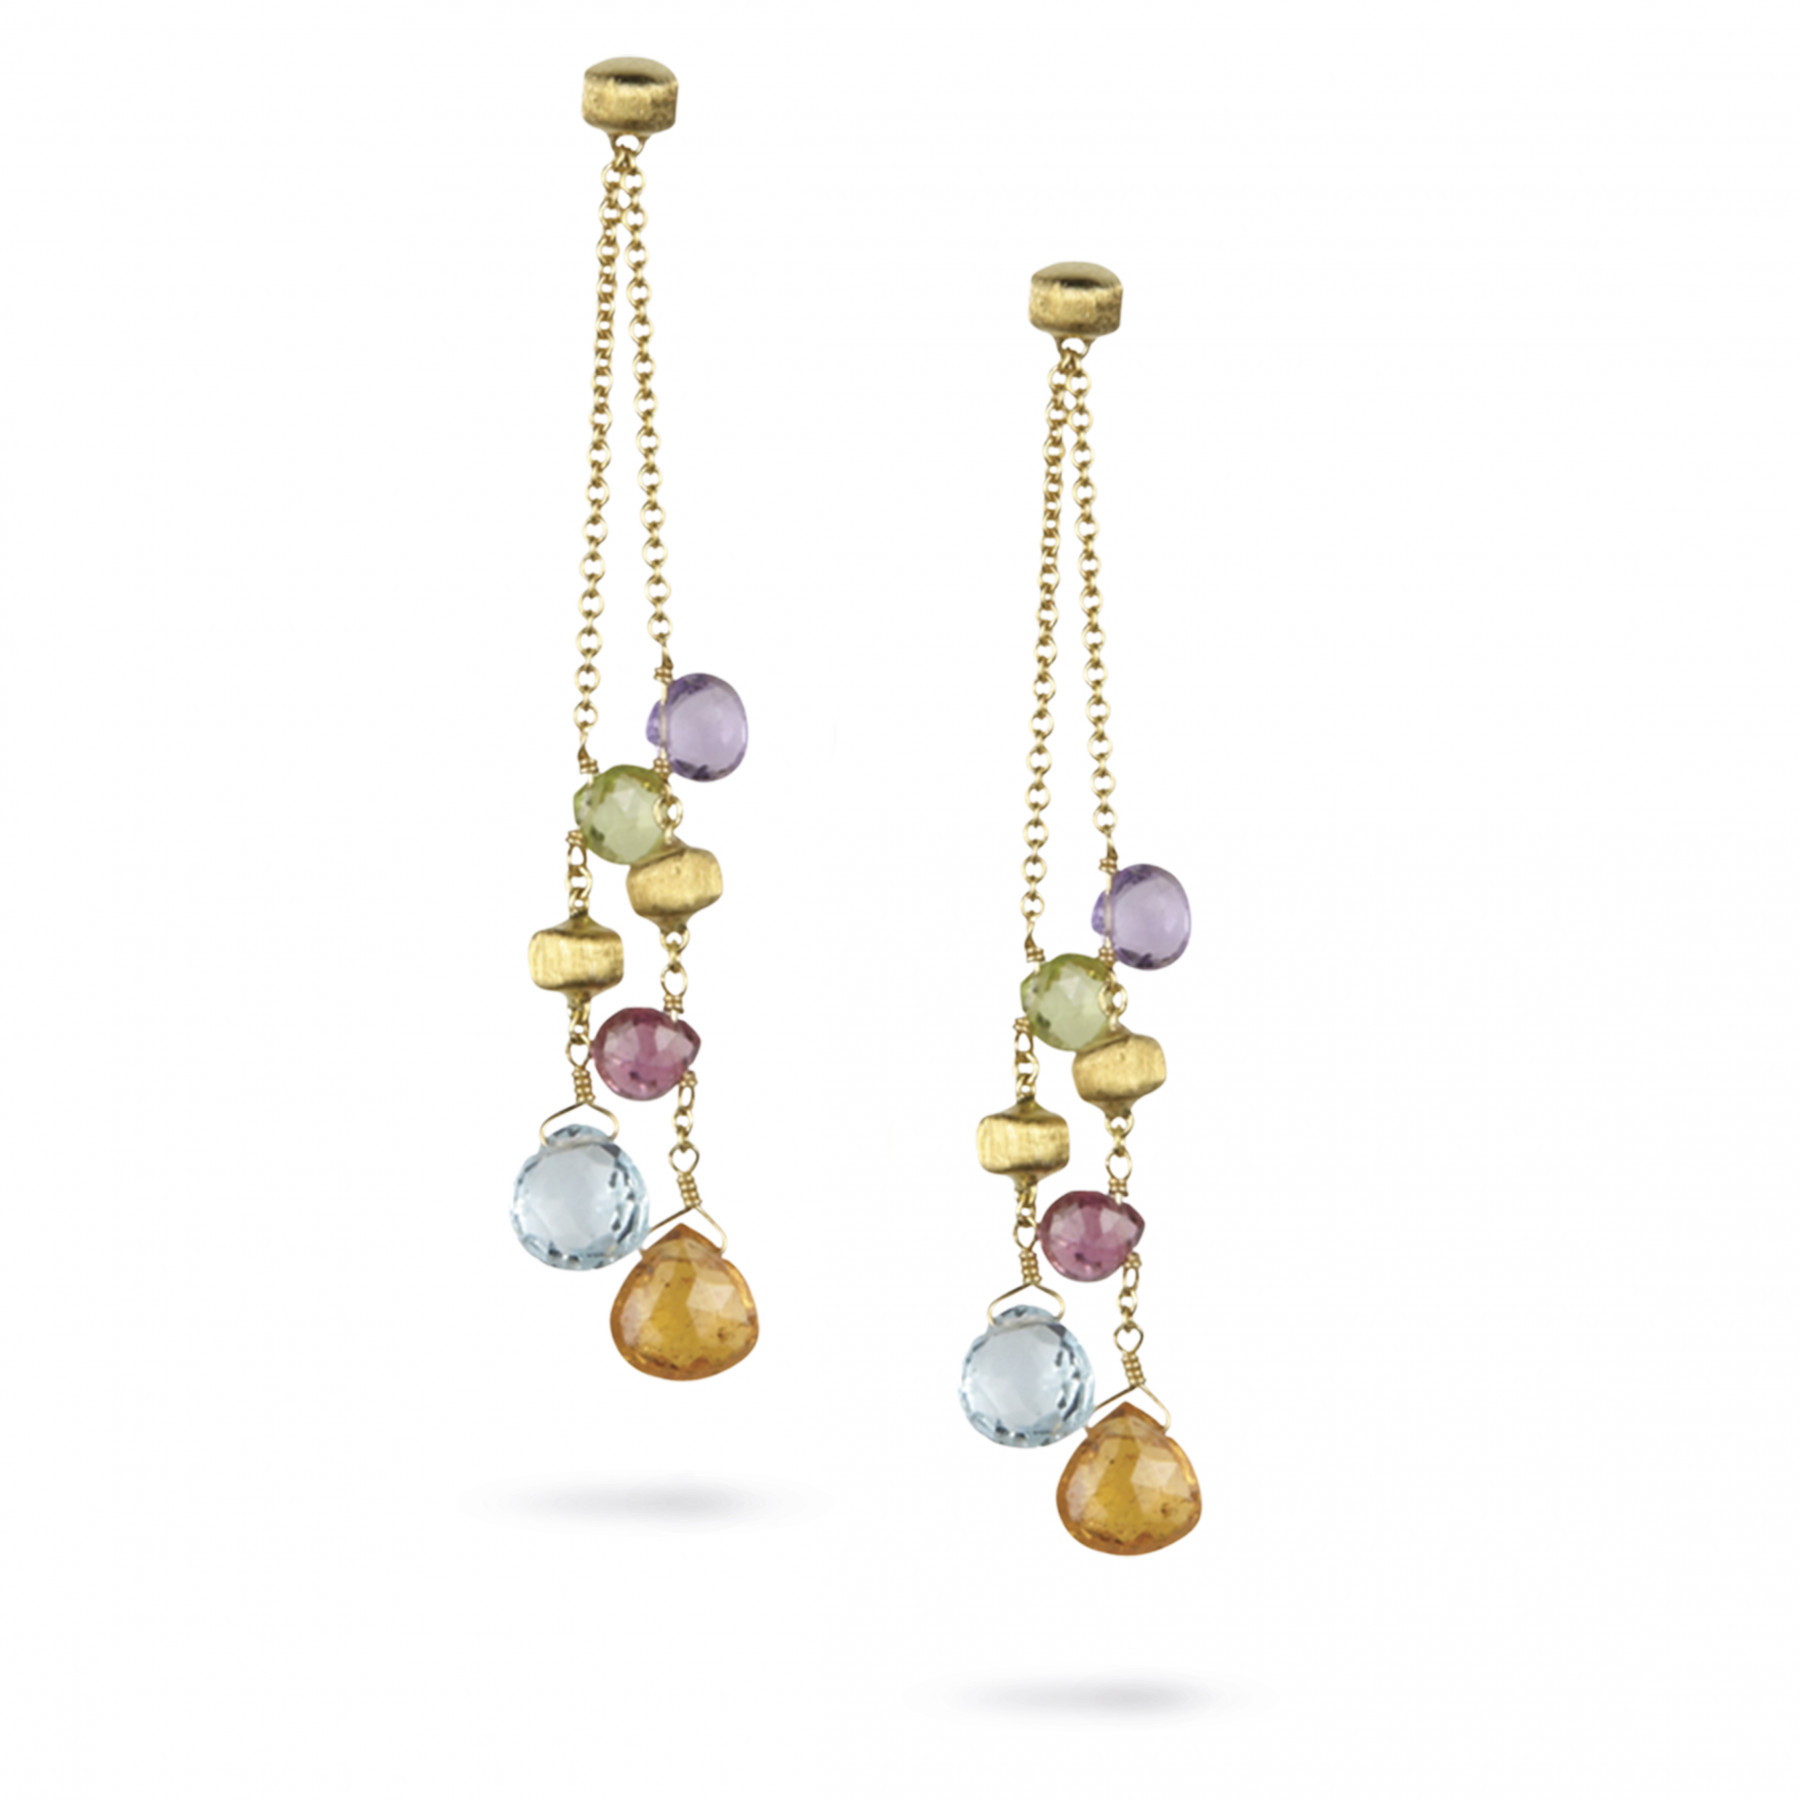 Marco Bicego Paradise 18kt Yellow Gold 2-Strand Earrings with Multi-Colored Gemstones